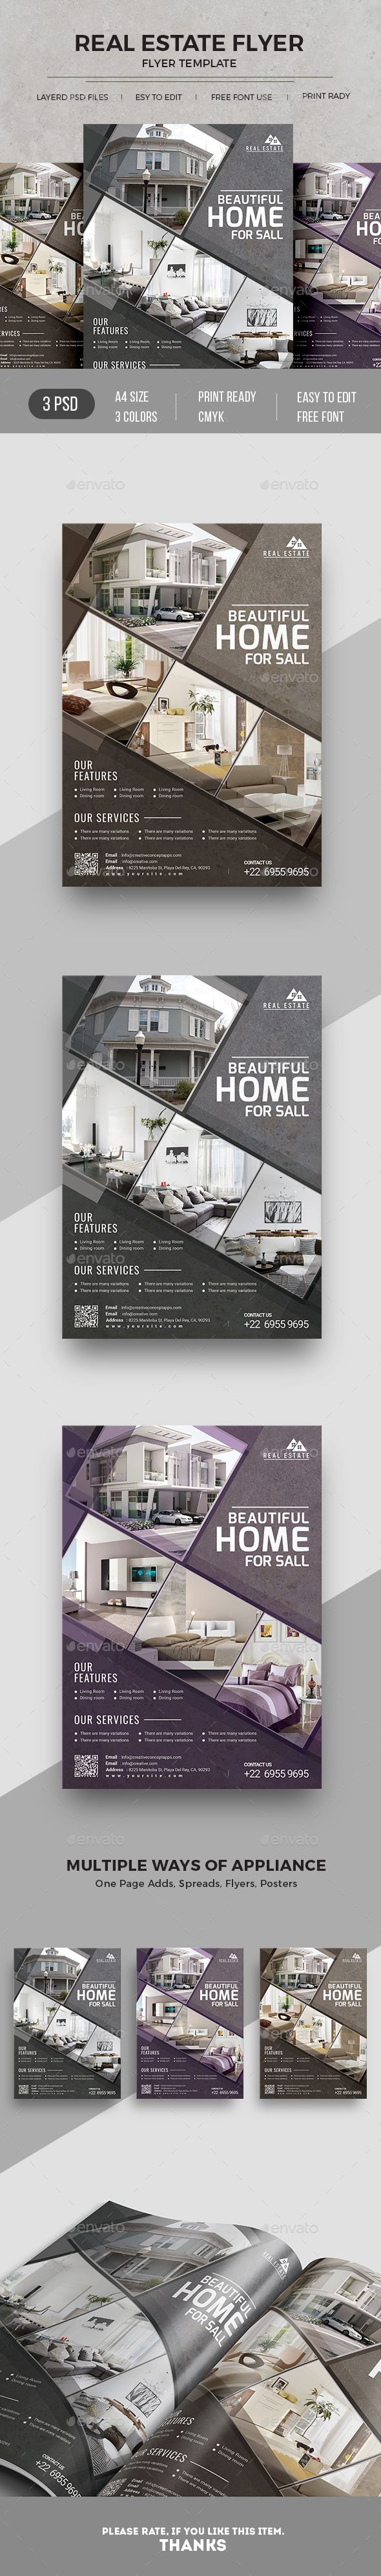 #Real #Estate Business #Flyer. Fully editable template in photoshop. You can easily change the text and images of your choice. 100% print ready file.